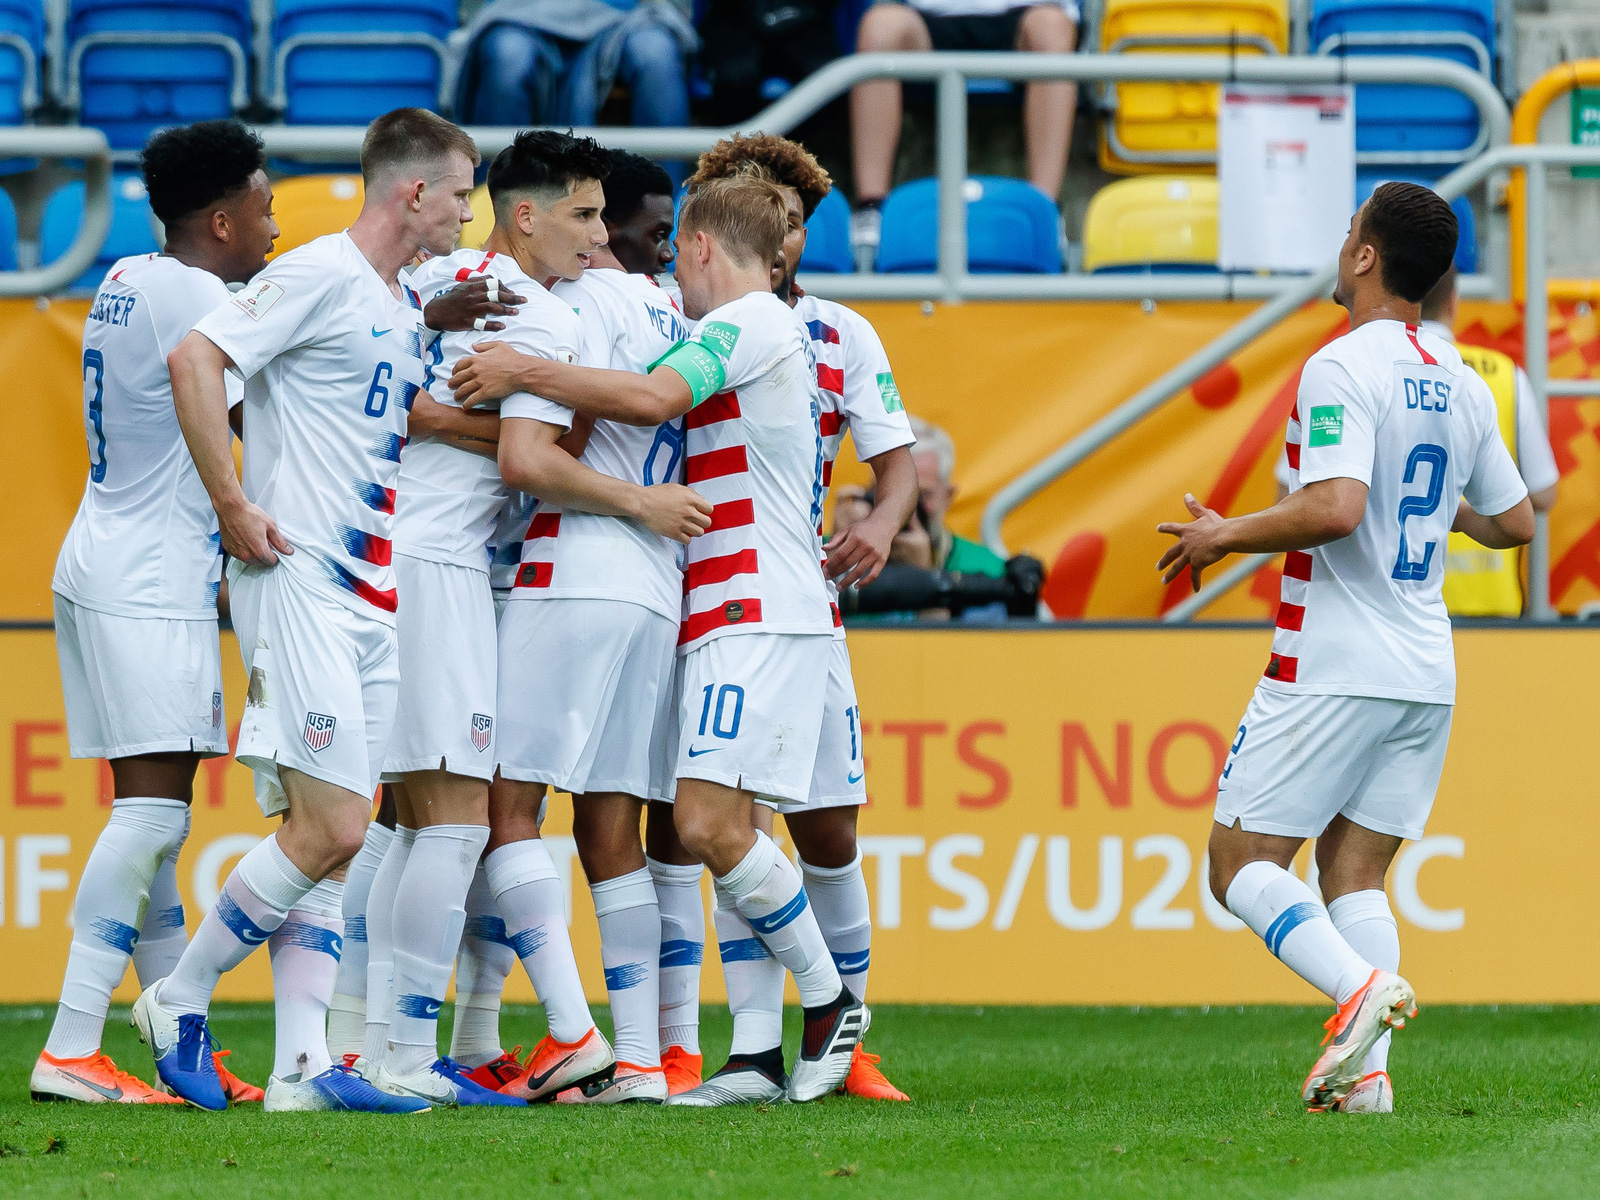 The USA U-20 national team loses to Ecuador in the World Cup quarterfinals